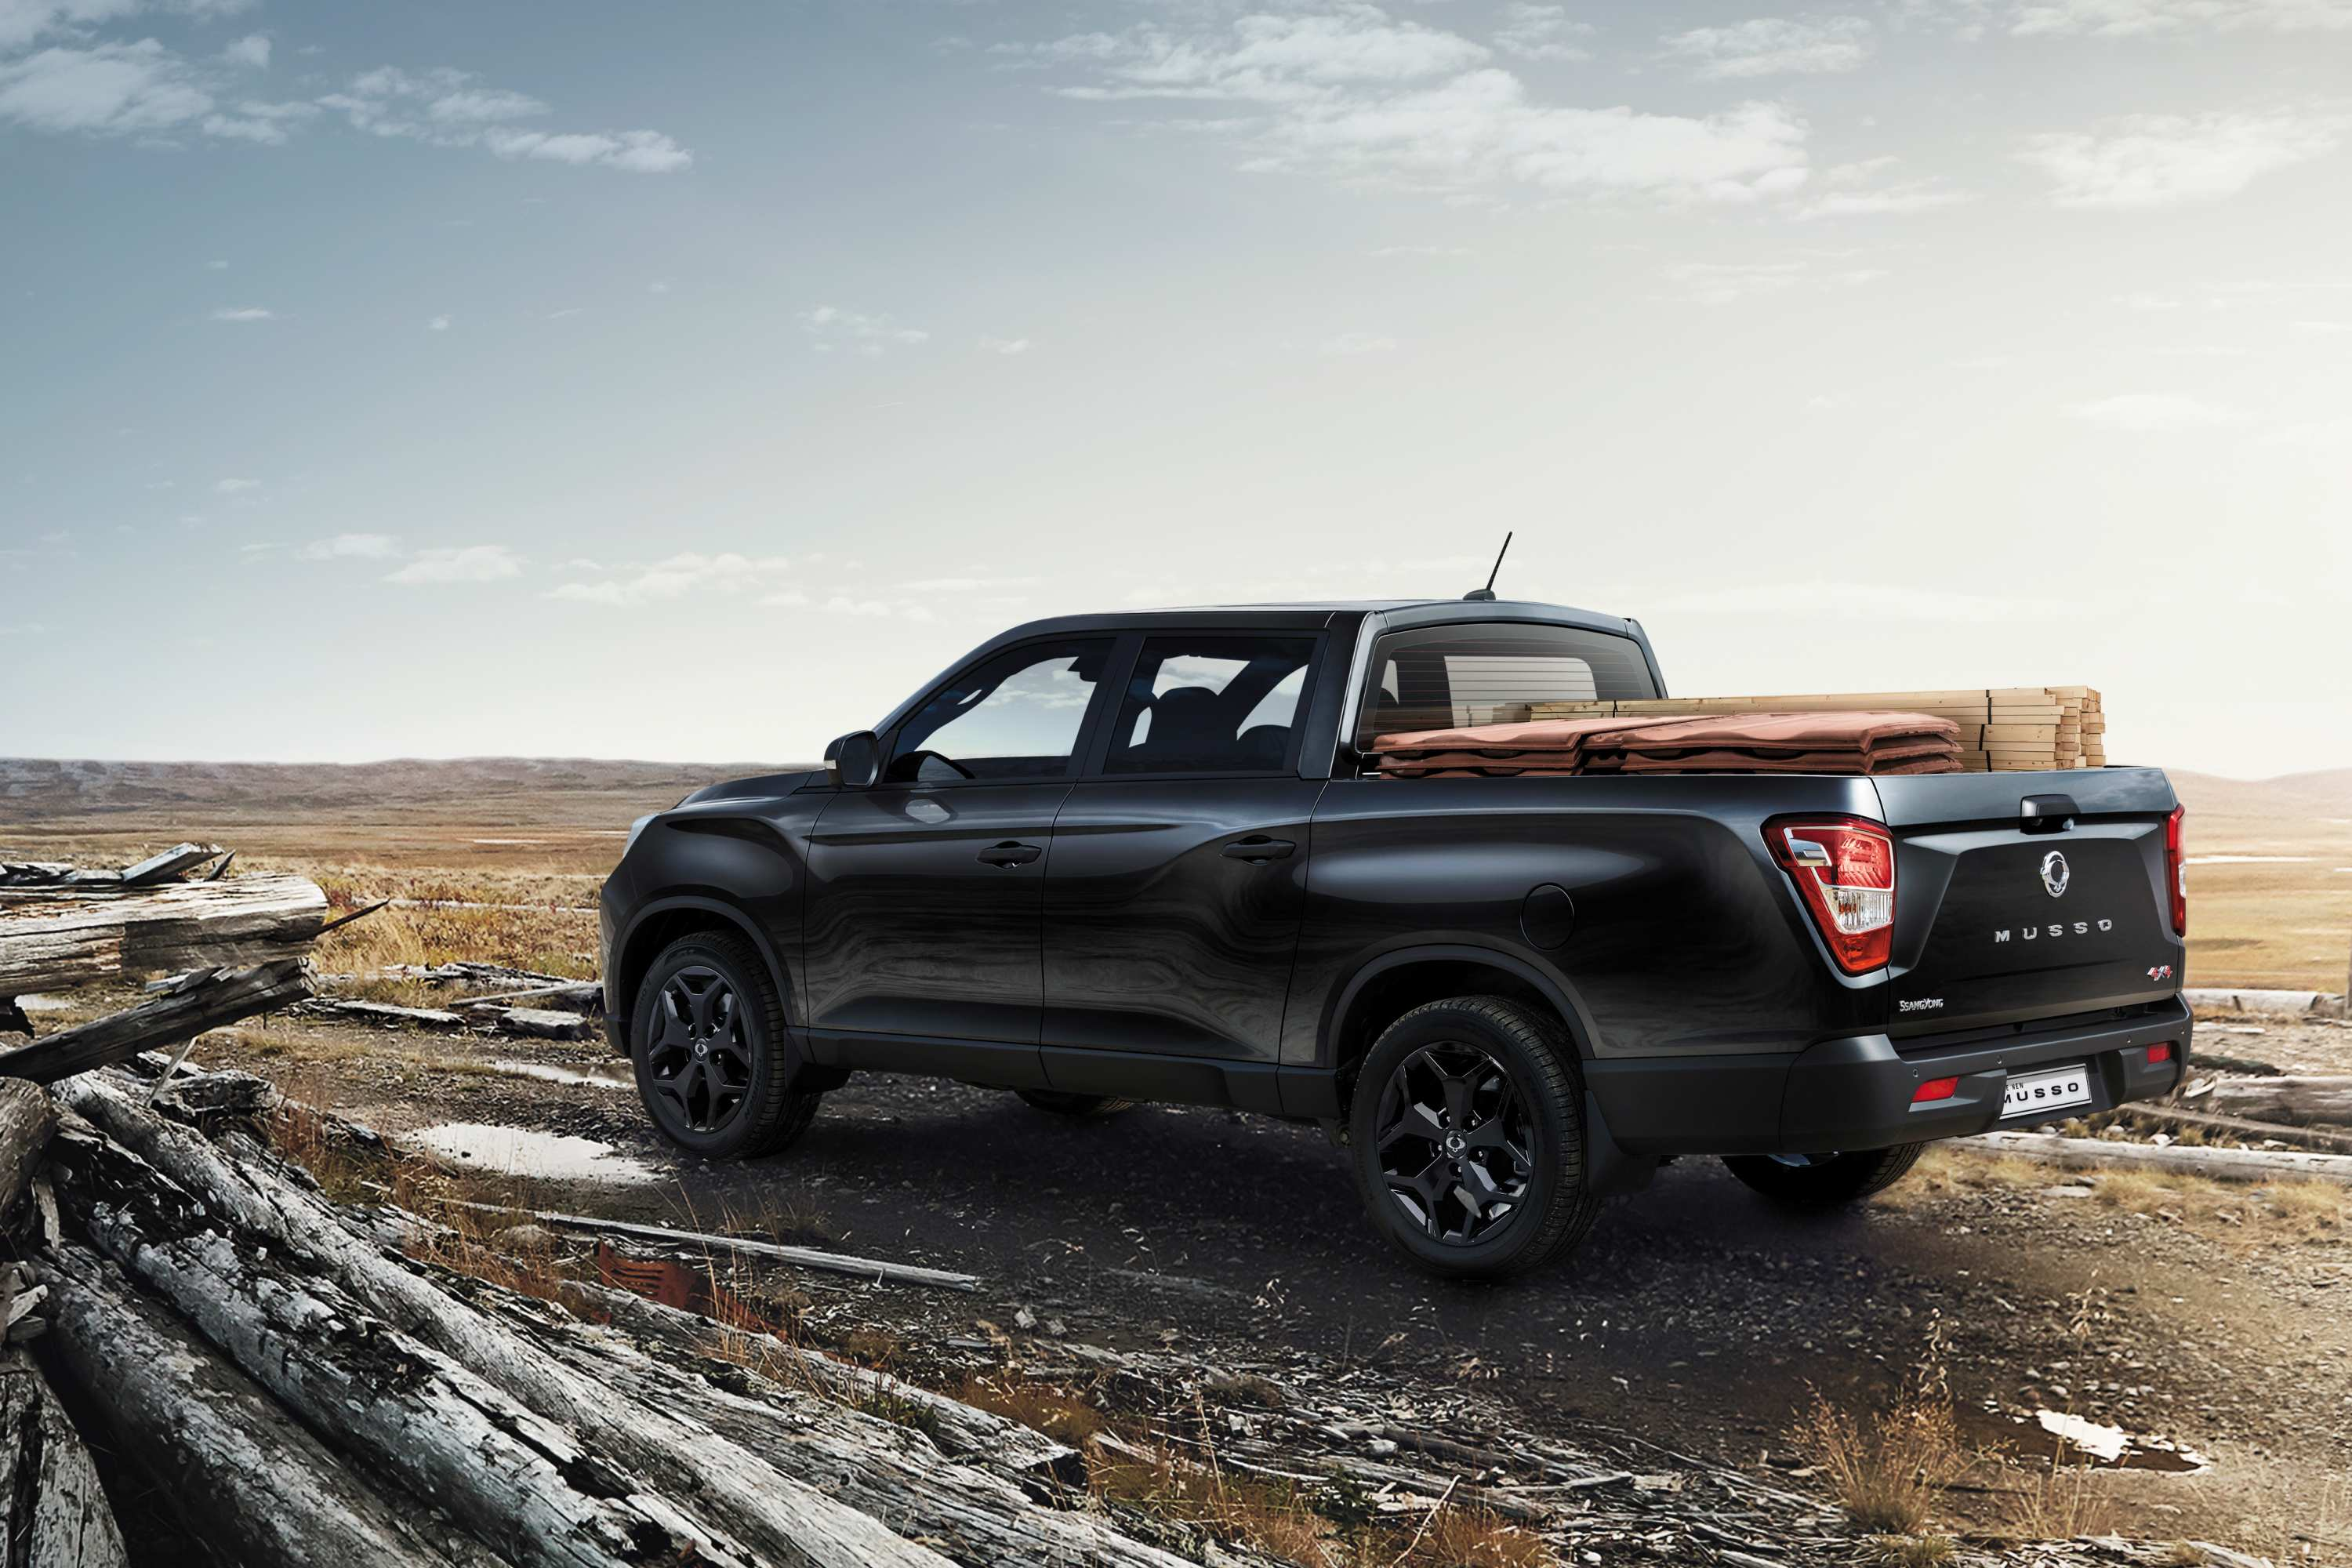 2021 Musso 4x4 dual cab Ute with a striking new front end design, new wheel designs and rear LED lighting.